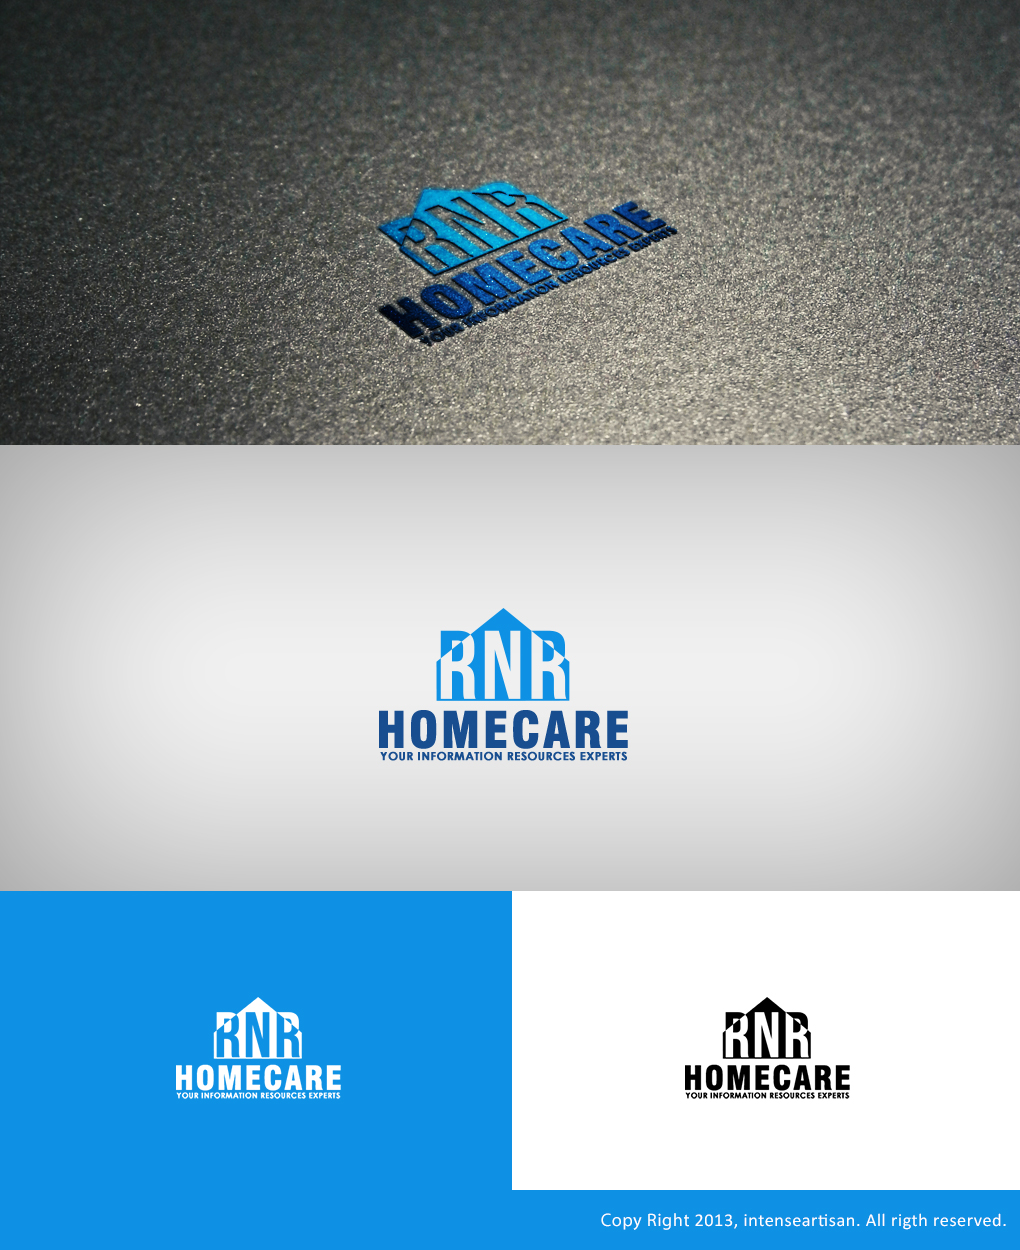 Logo Design by Virgilio Pineda III - Entry No. 123 in the Logo Design Contest Imaginative Logo Design for RNR HomeCare.